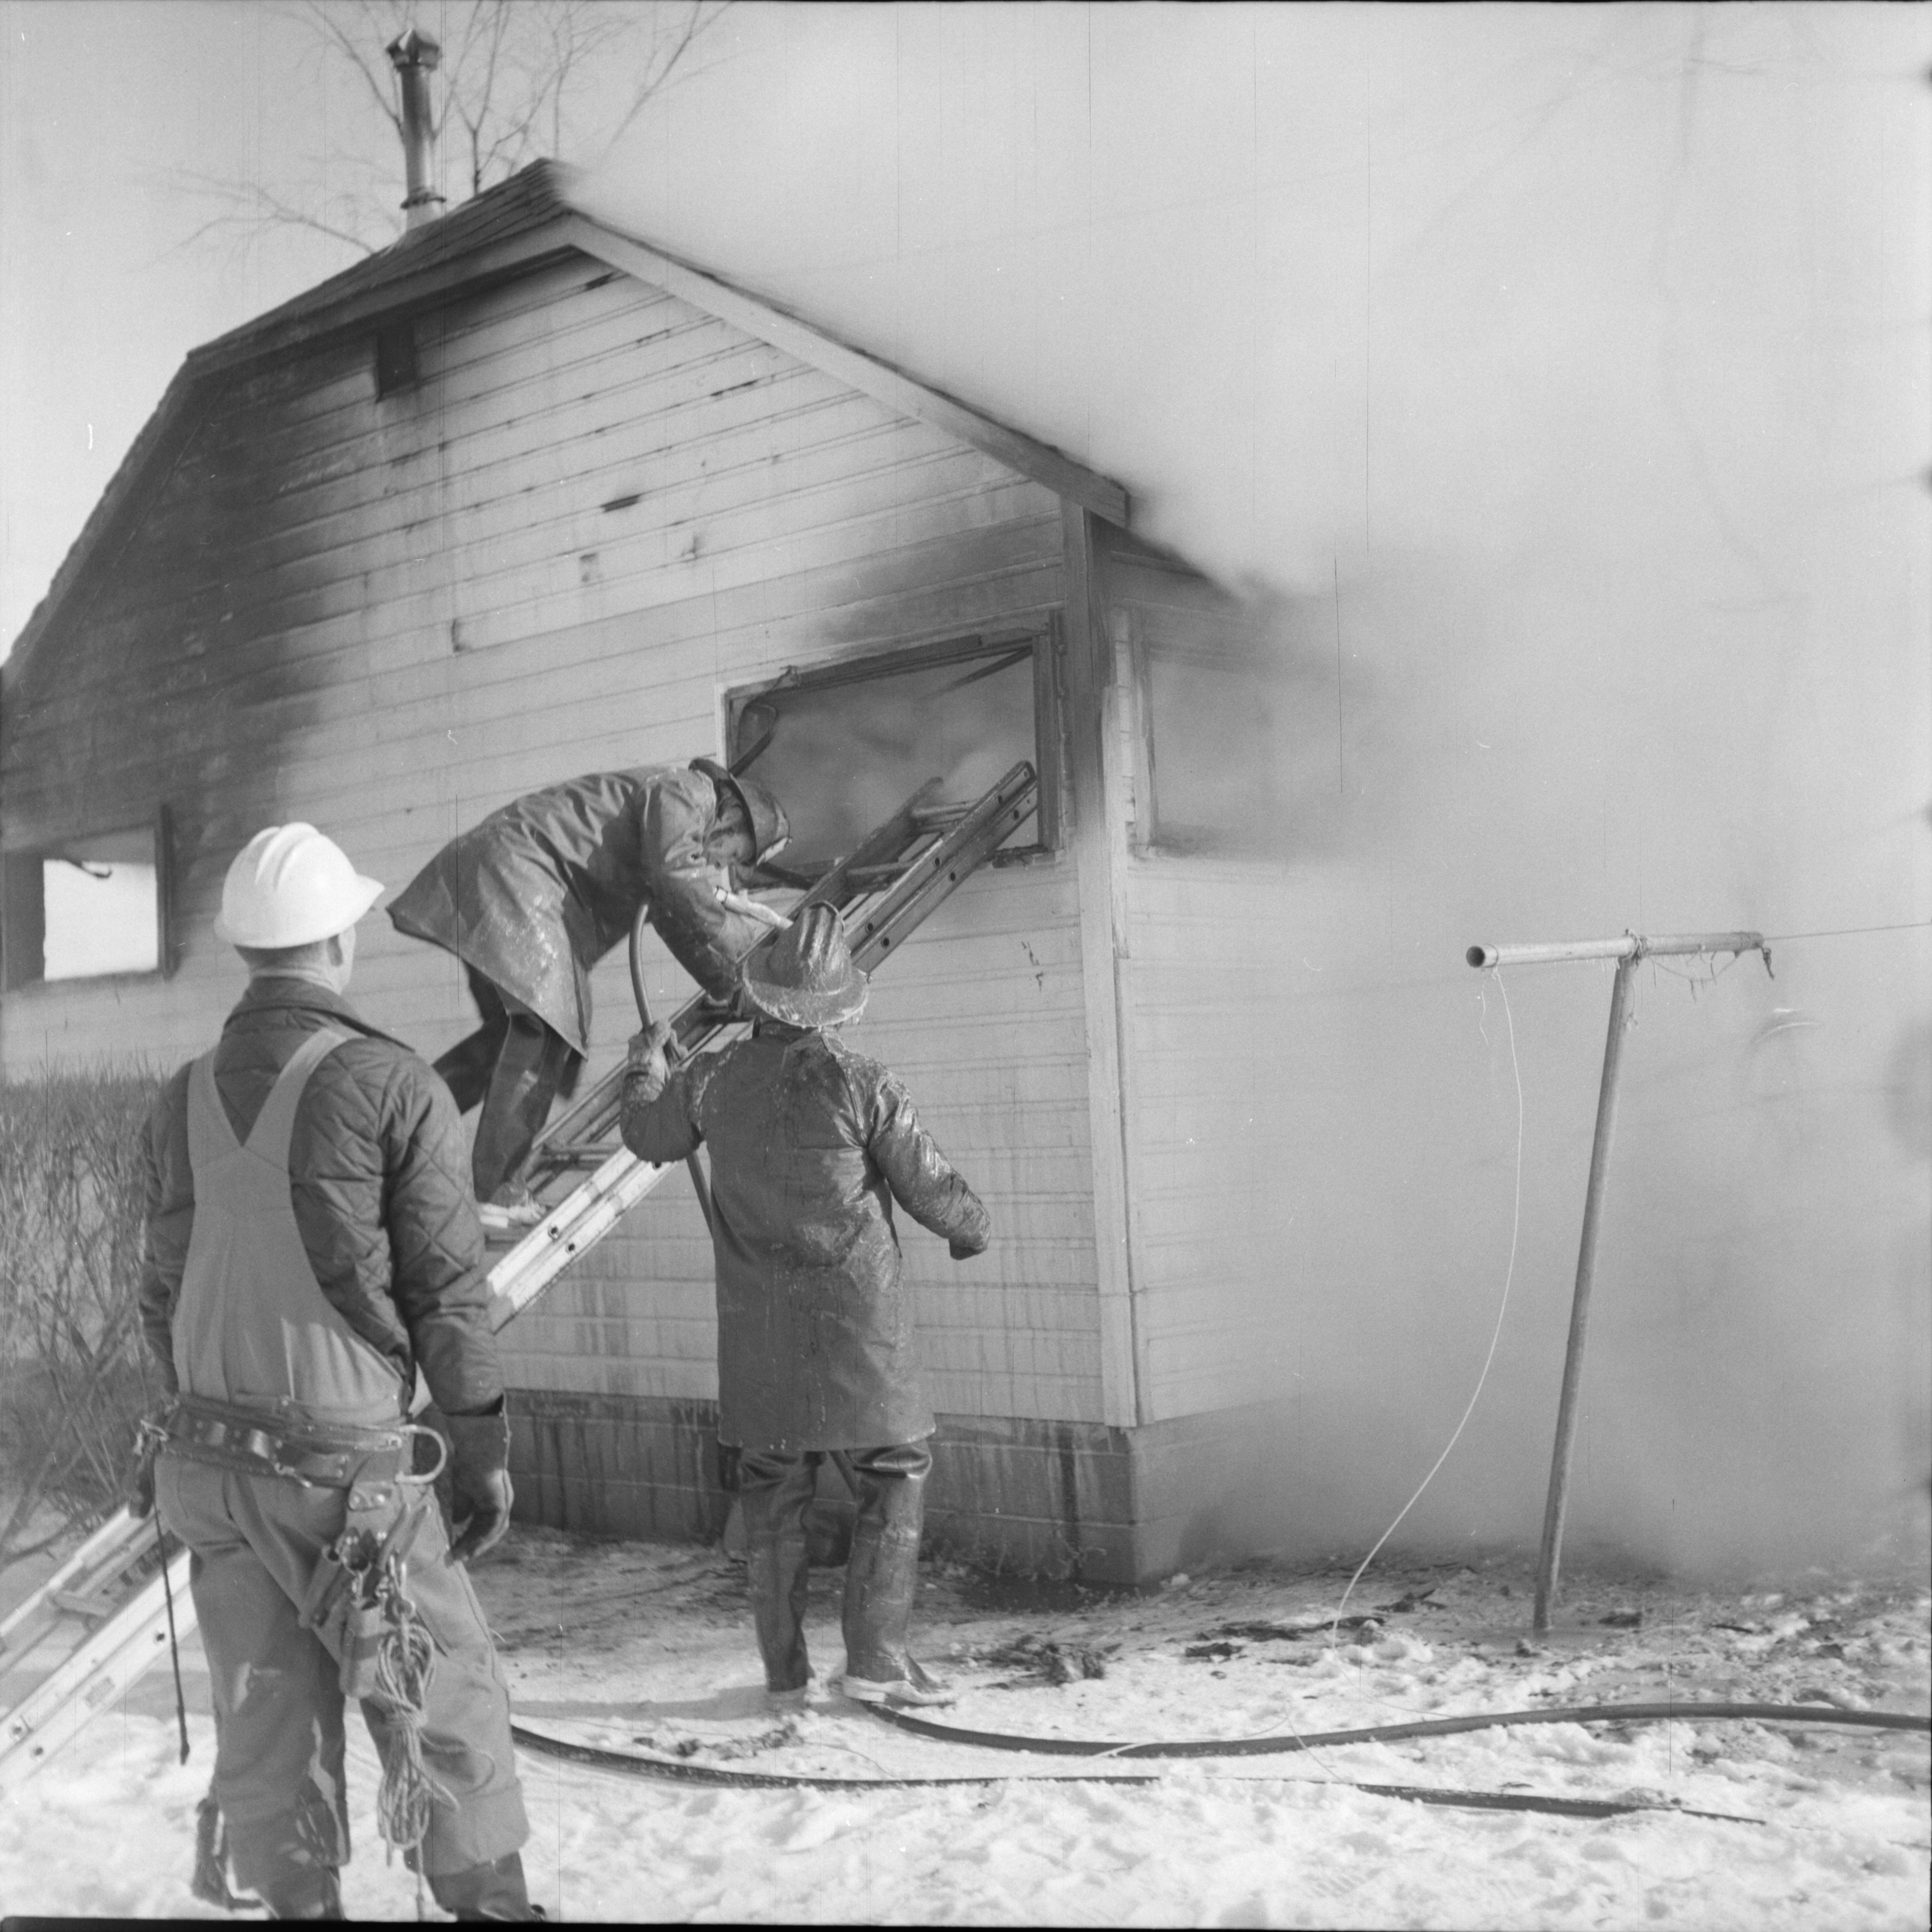 Firemen at Burning Home on Ellsworth Rd, February 1965 image